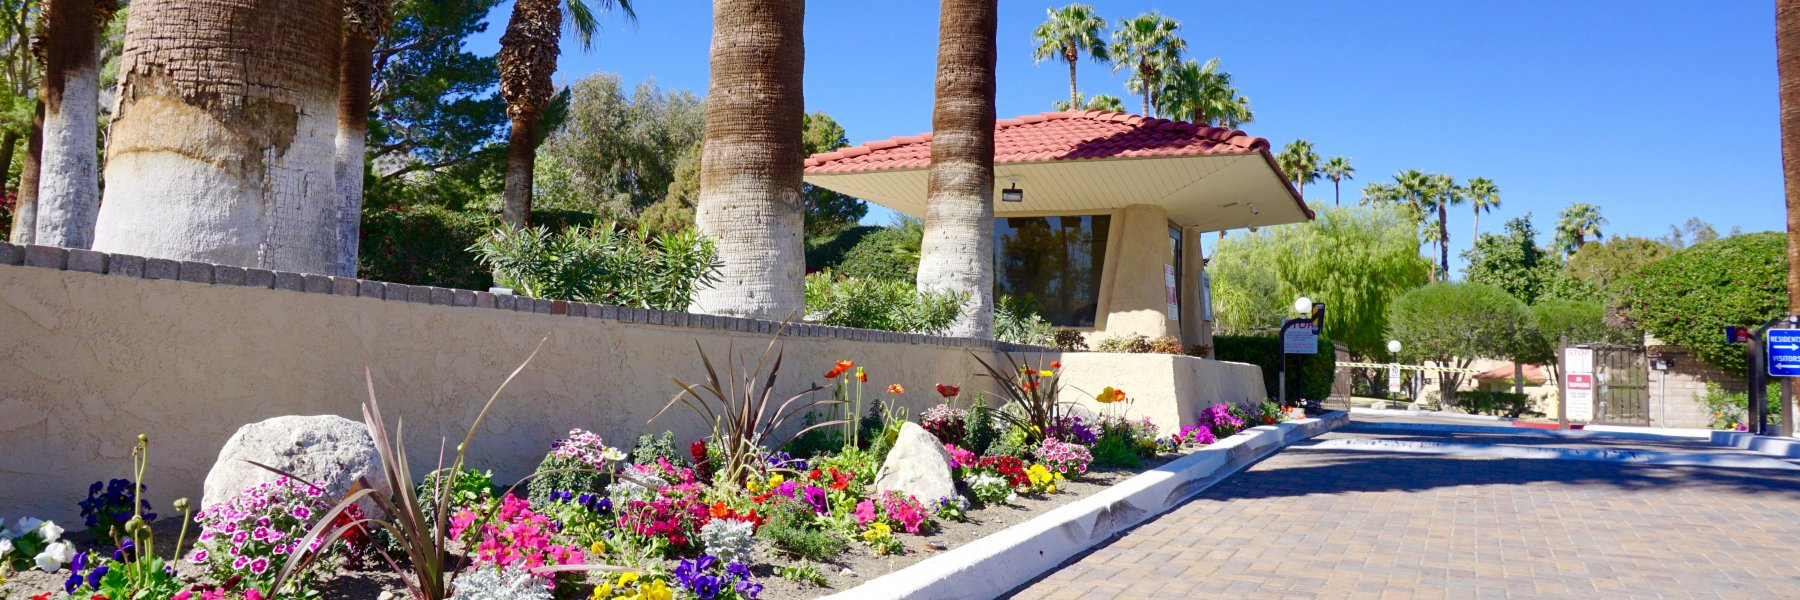 Palm Springs Villas I is a community of homes in Palm Springs California